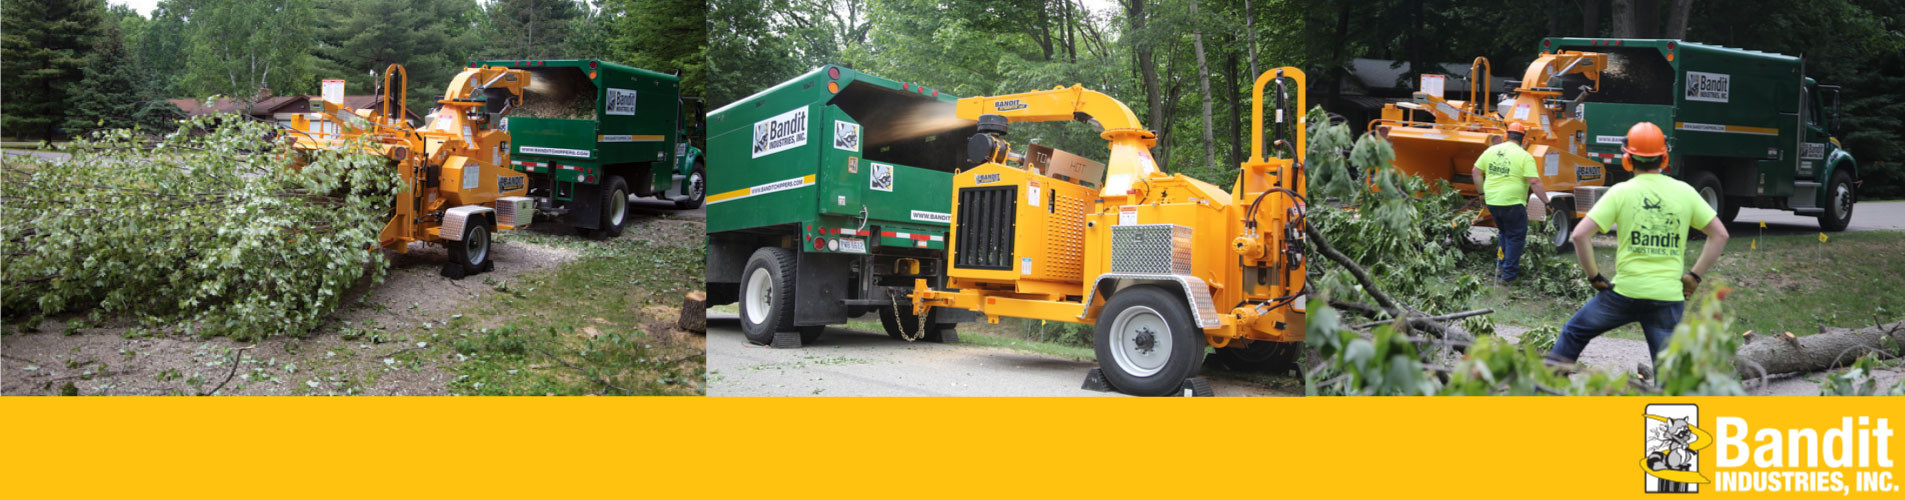 Large Equipment from Bandit for Rent or Sale | Iron Source DE